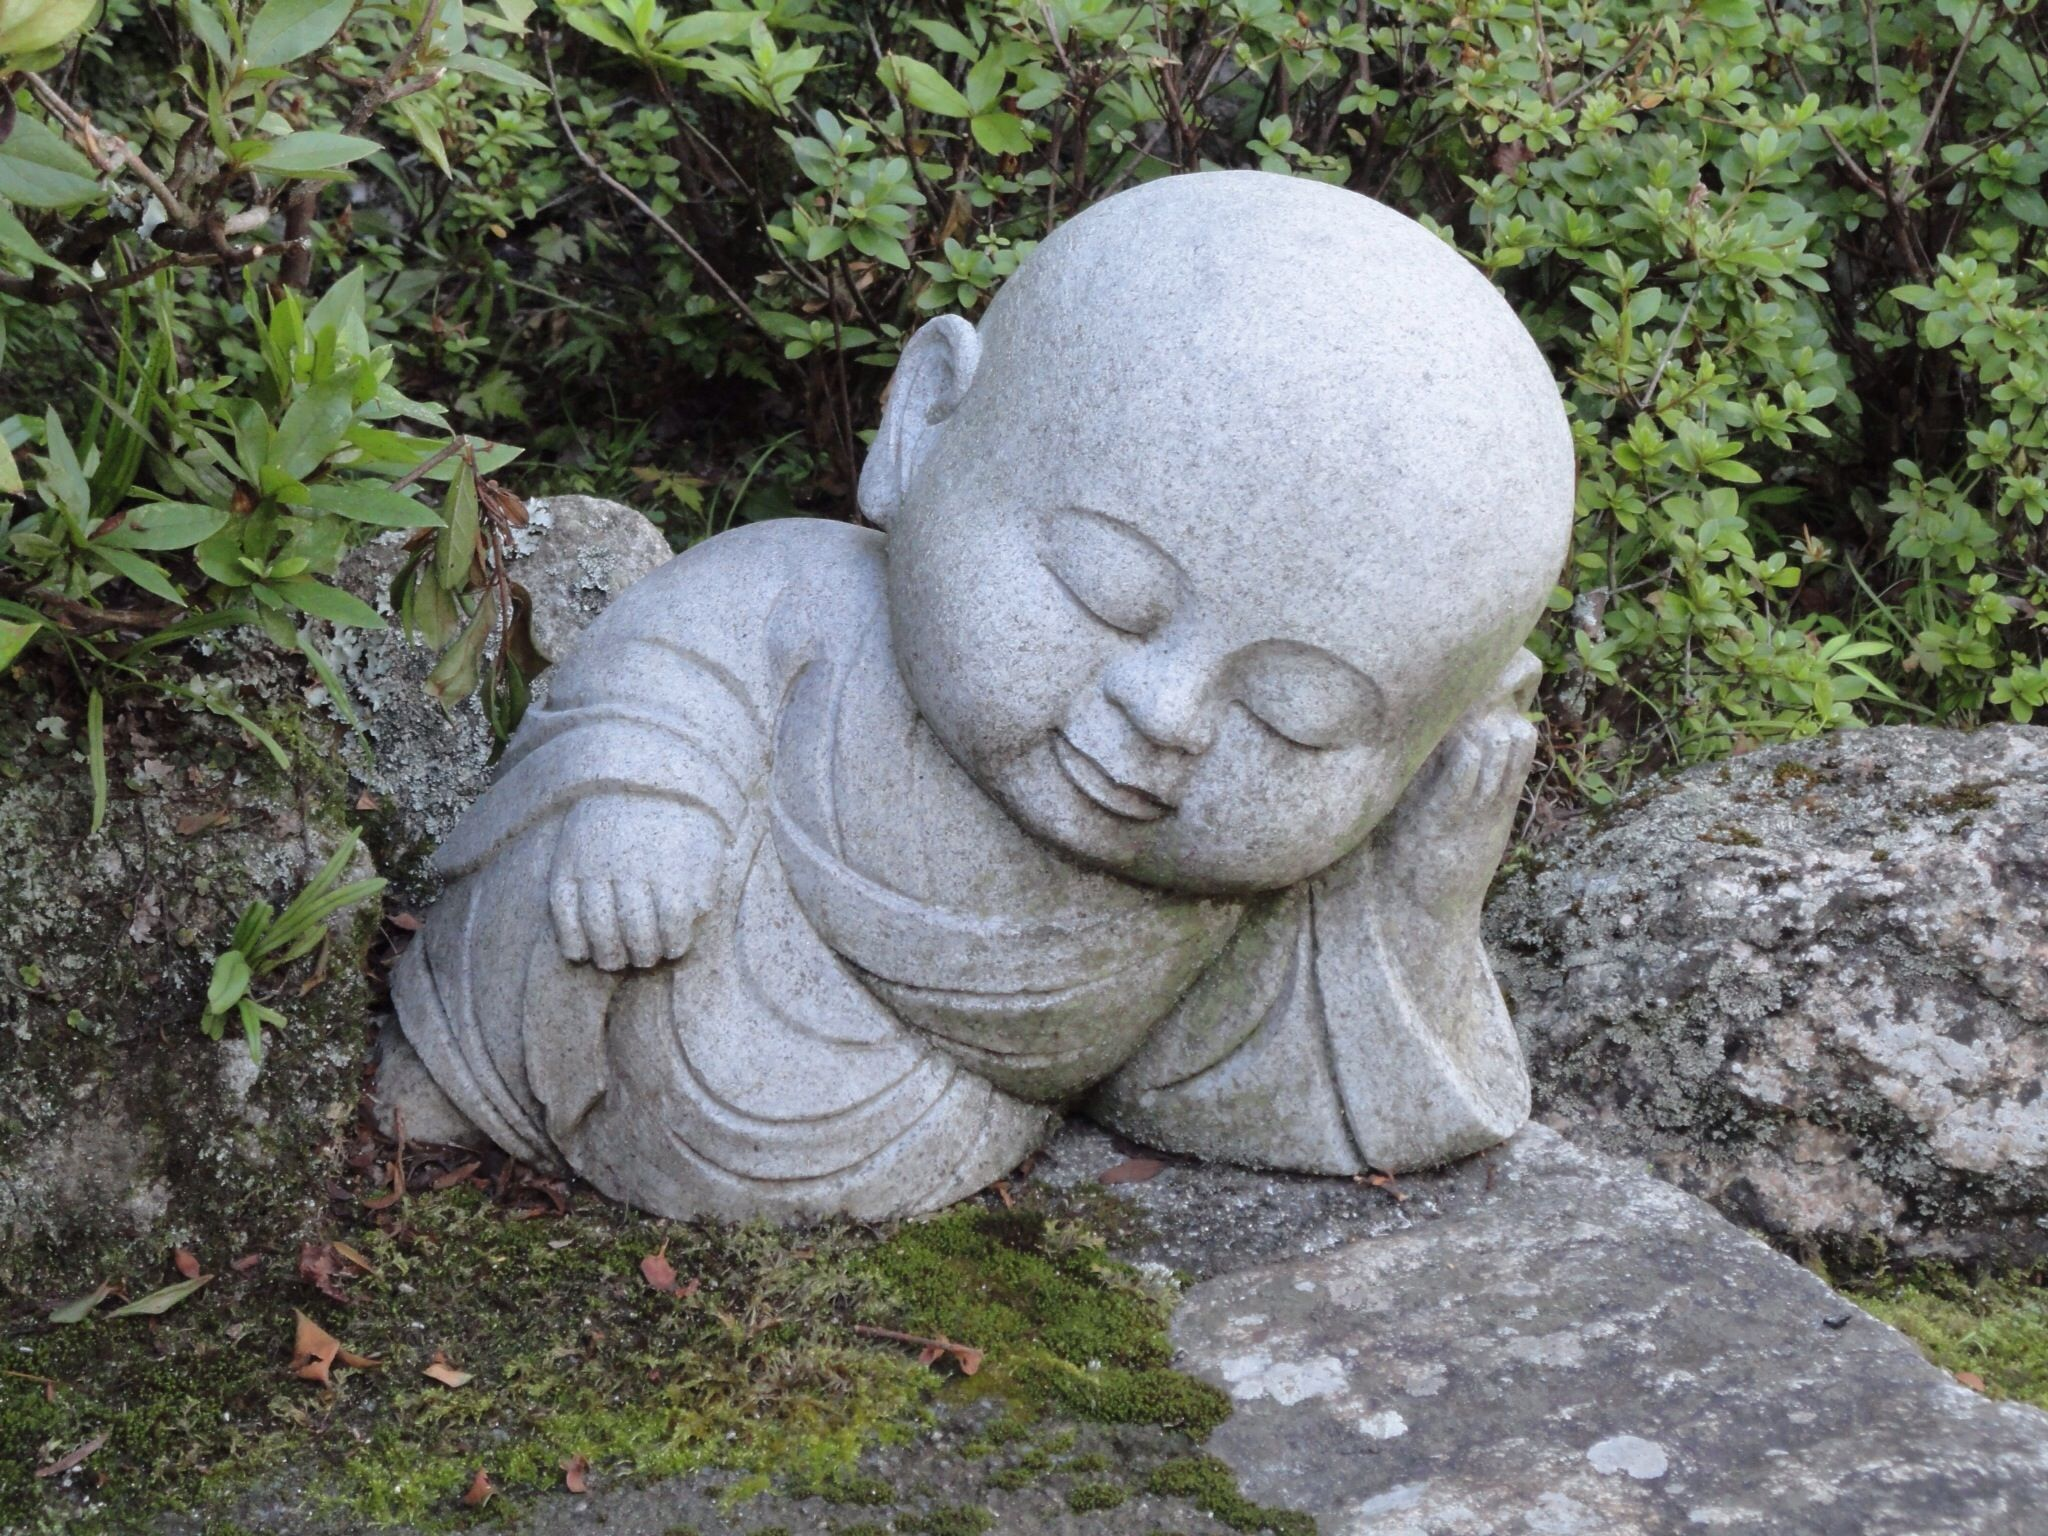 Baby Buddha Asleep In Japanese Garden Garden Statues, Garden Sculpture, Art  Sculpture, Buddha